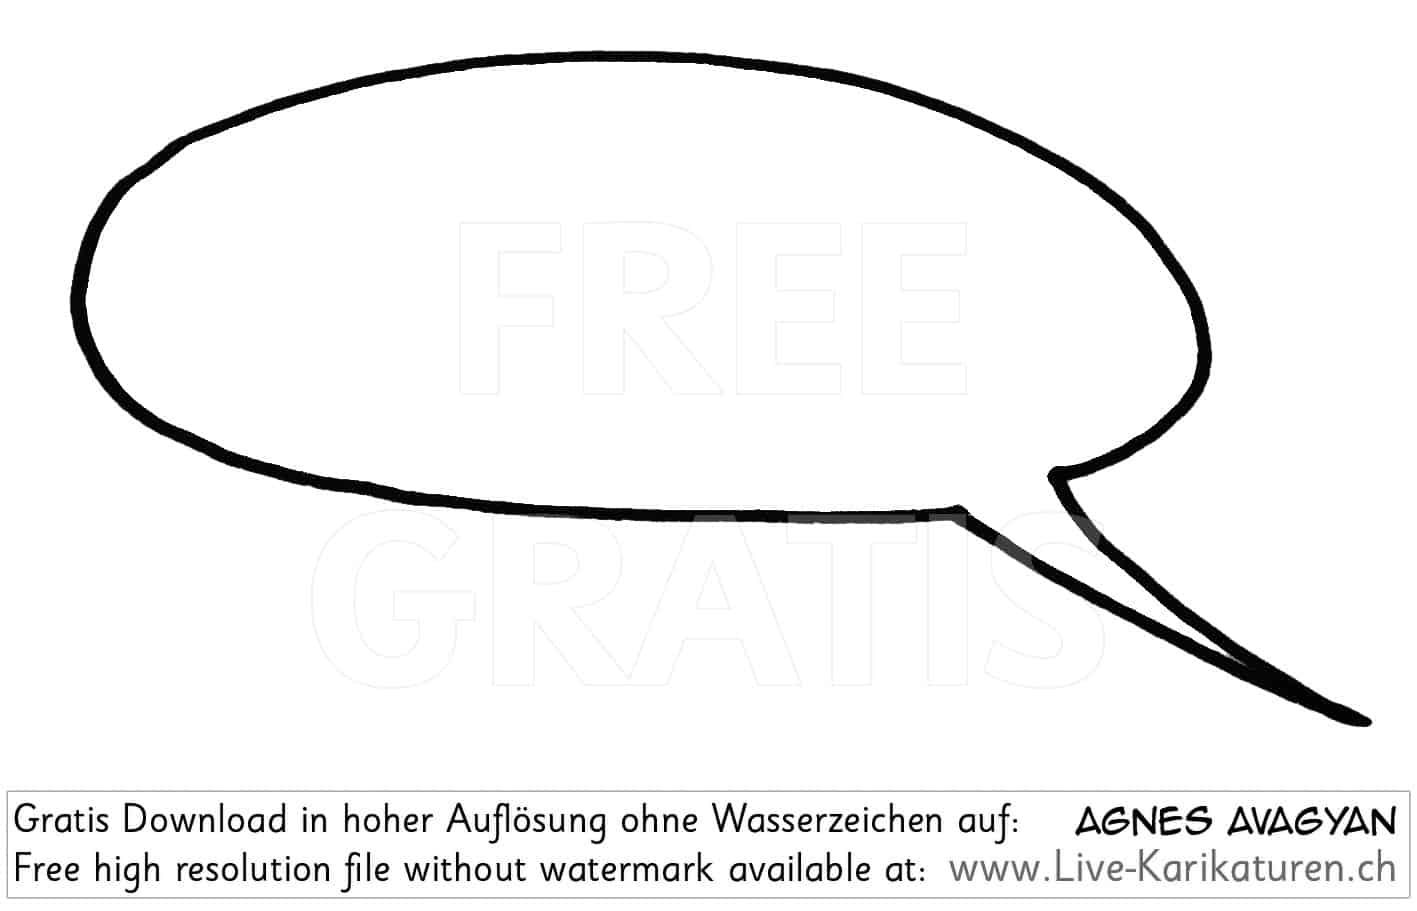 sprechblase leer speech bubble agnes live karikaturen man clipart side images or clip art men clipart images